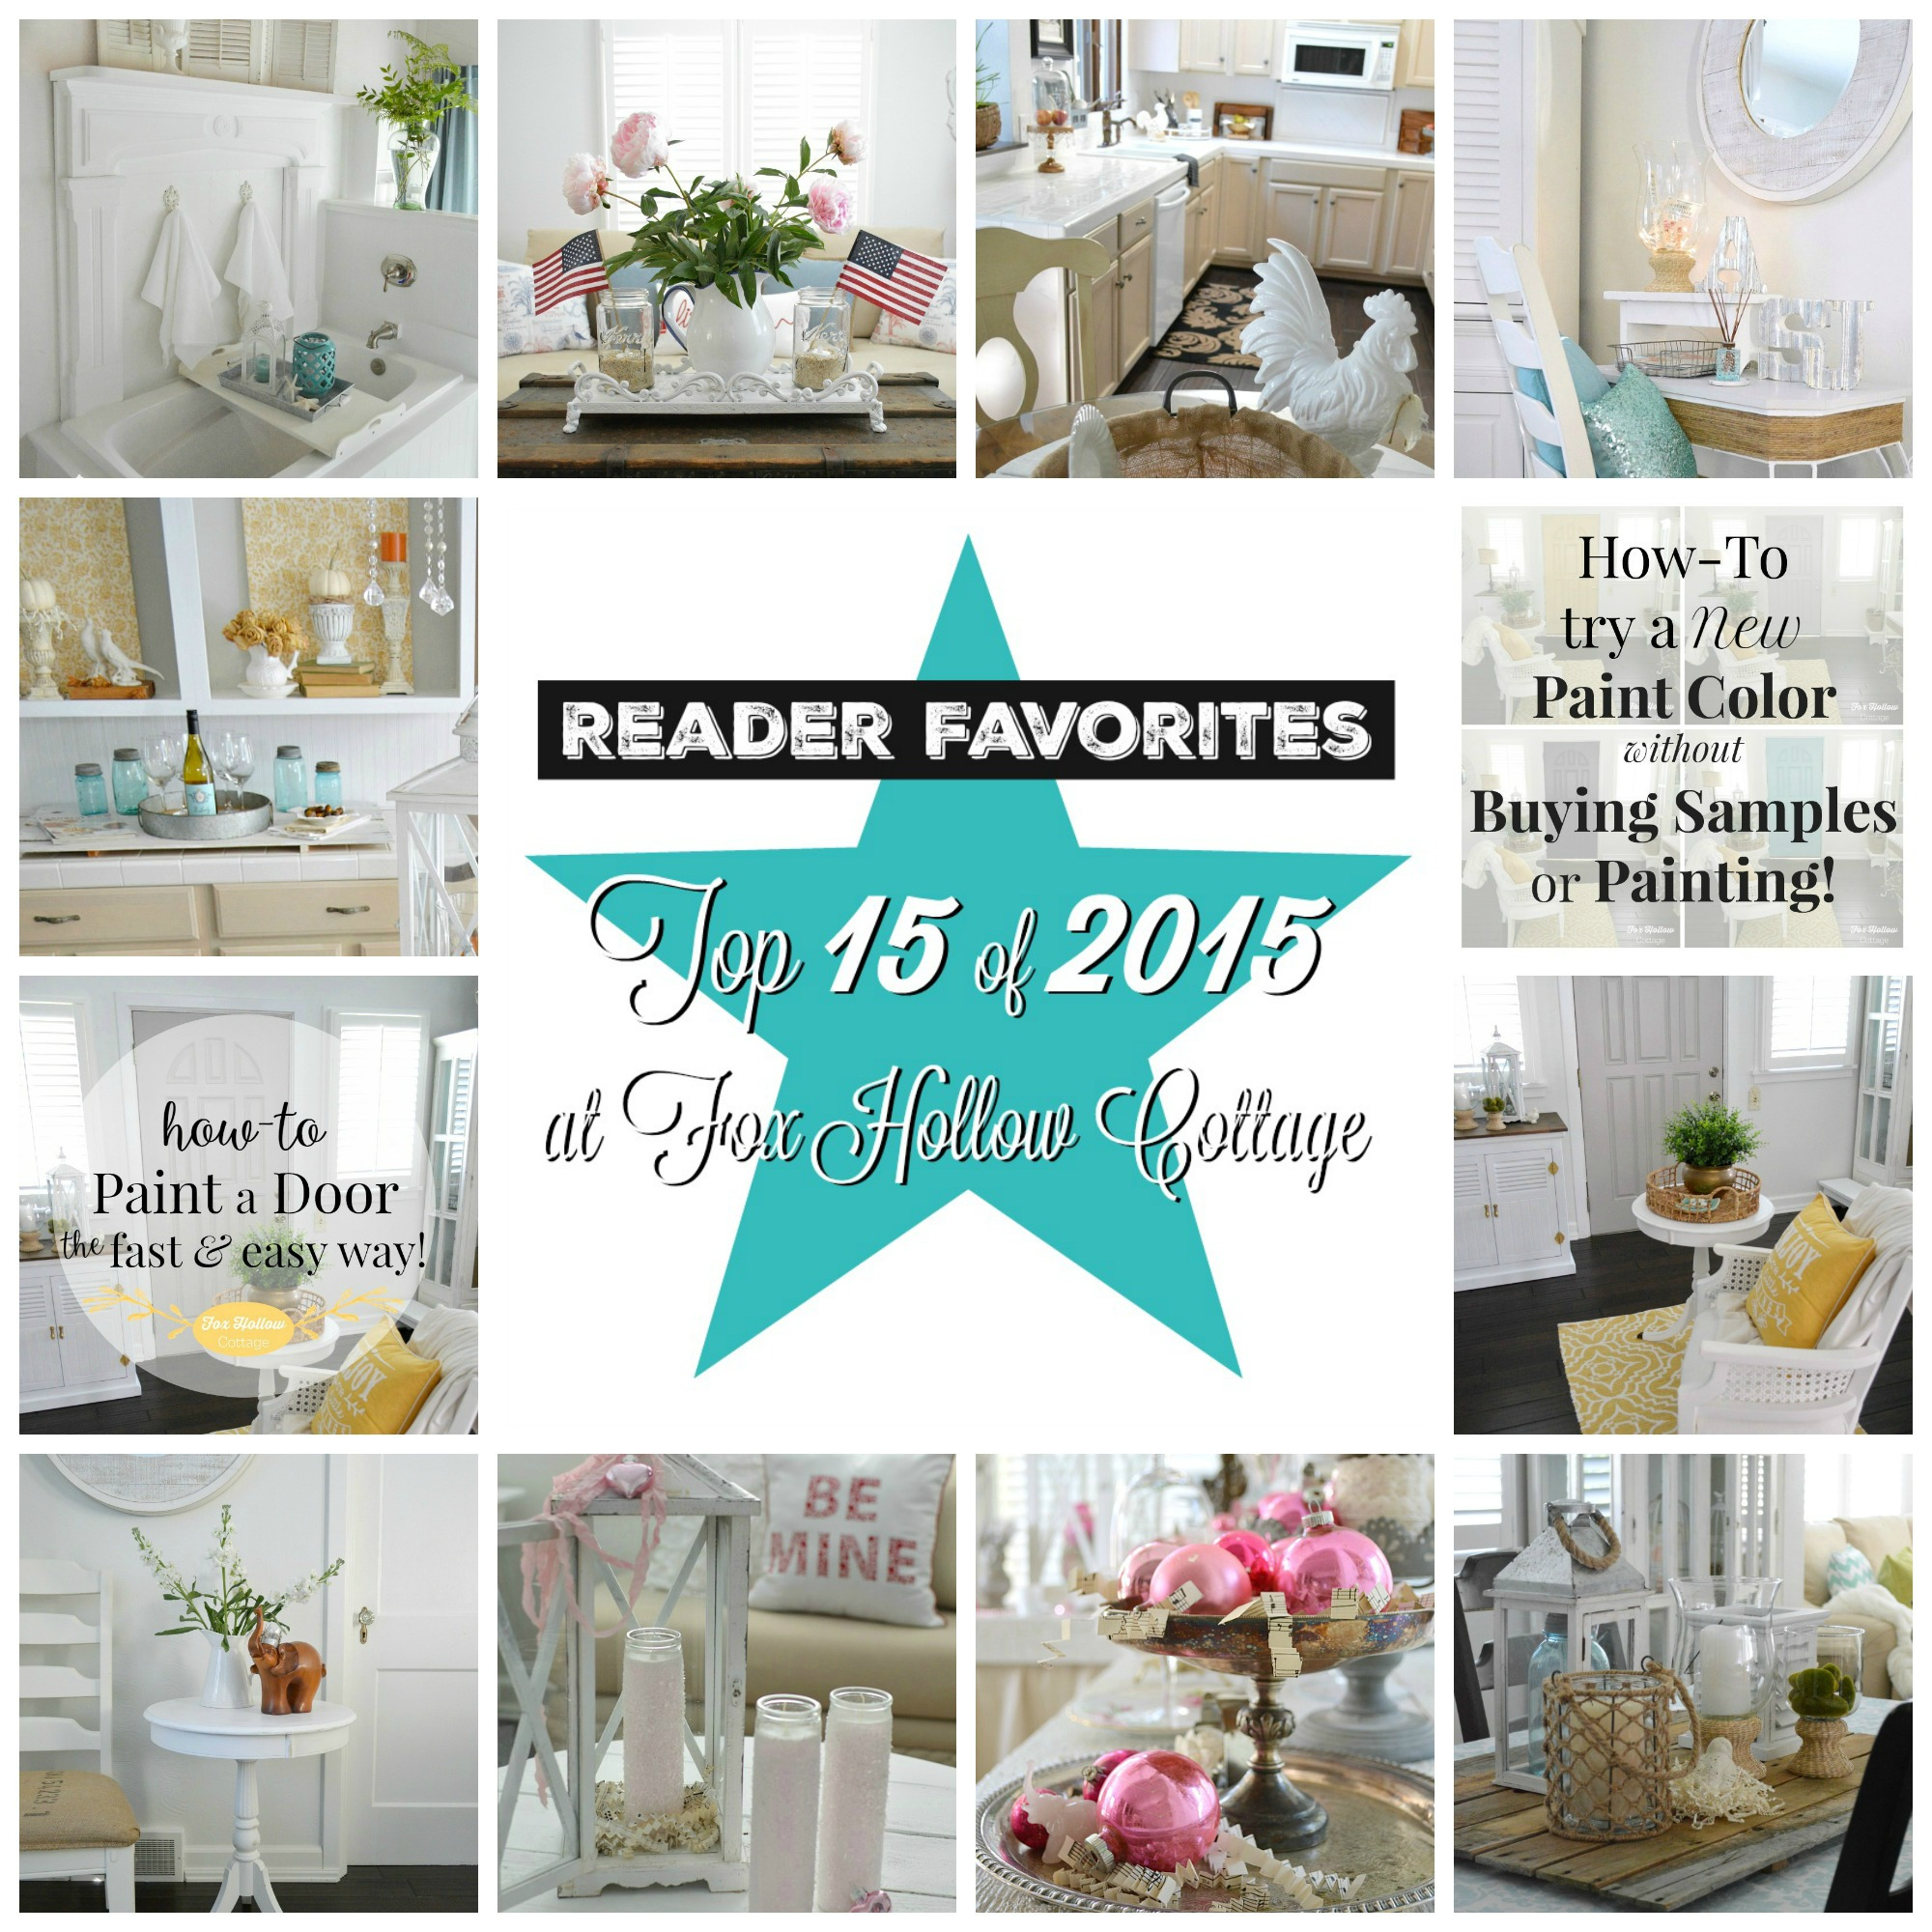 Top 15 diy craft and home decorating projects of 2015 - Pinterest craft ideas for home decor property ...